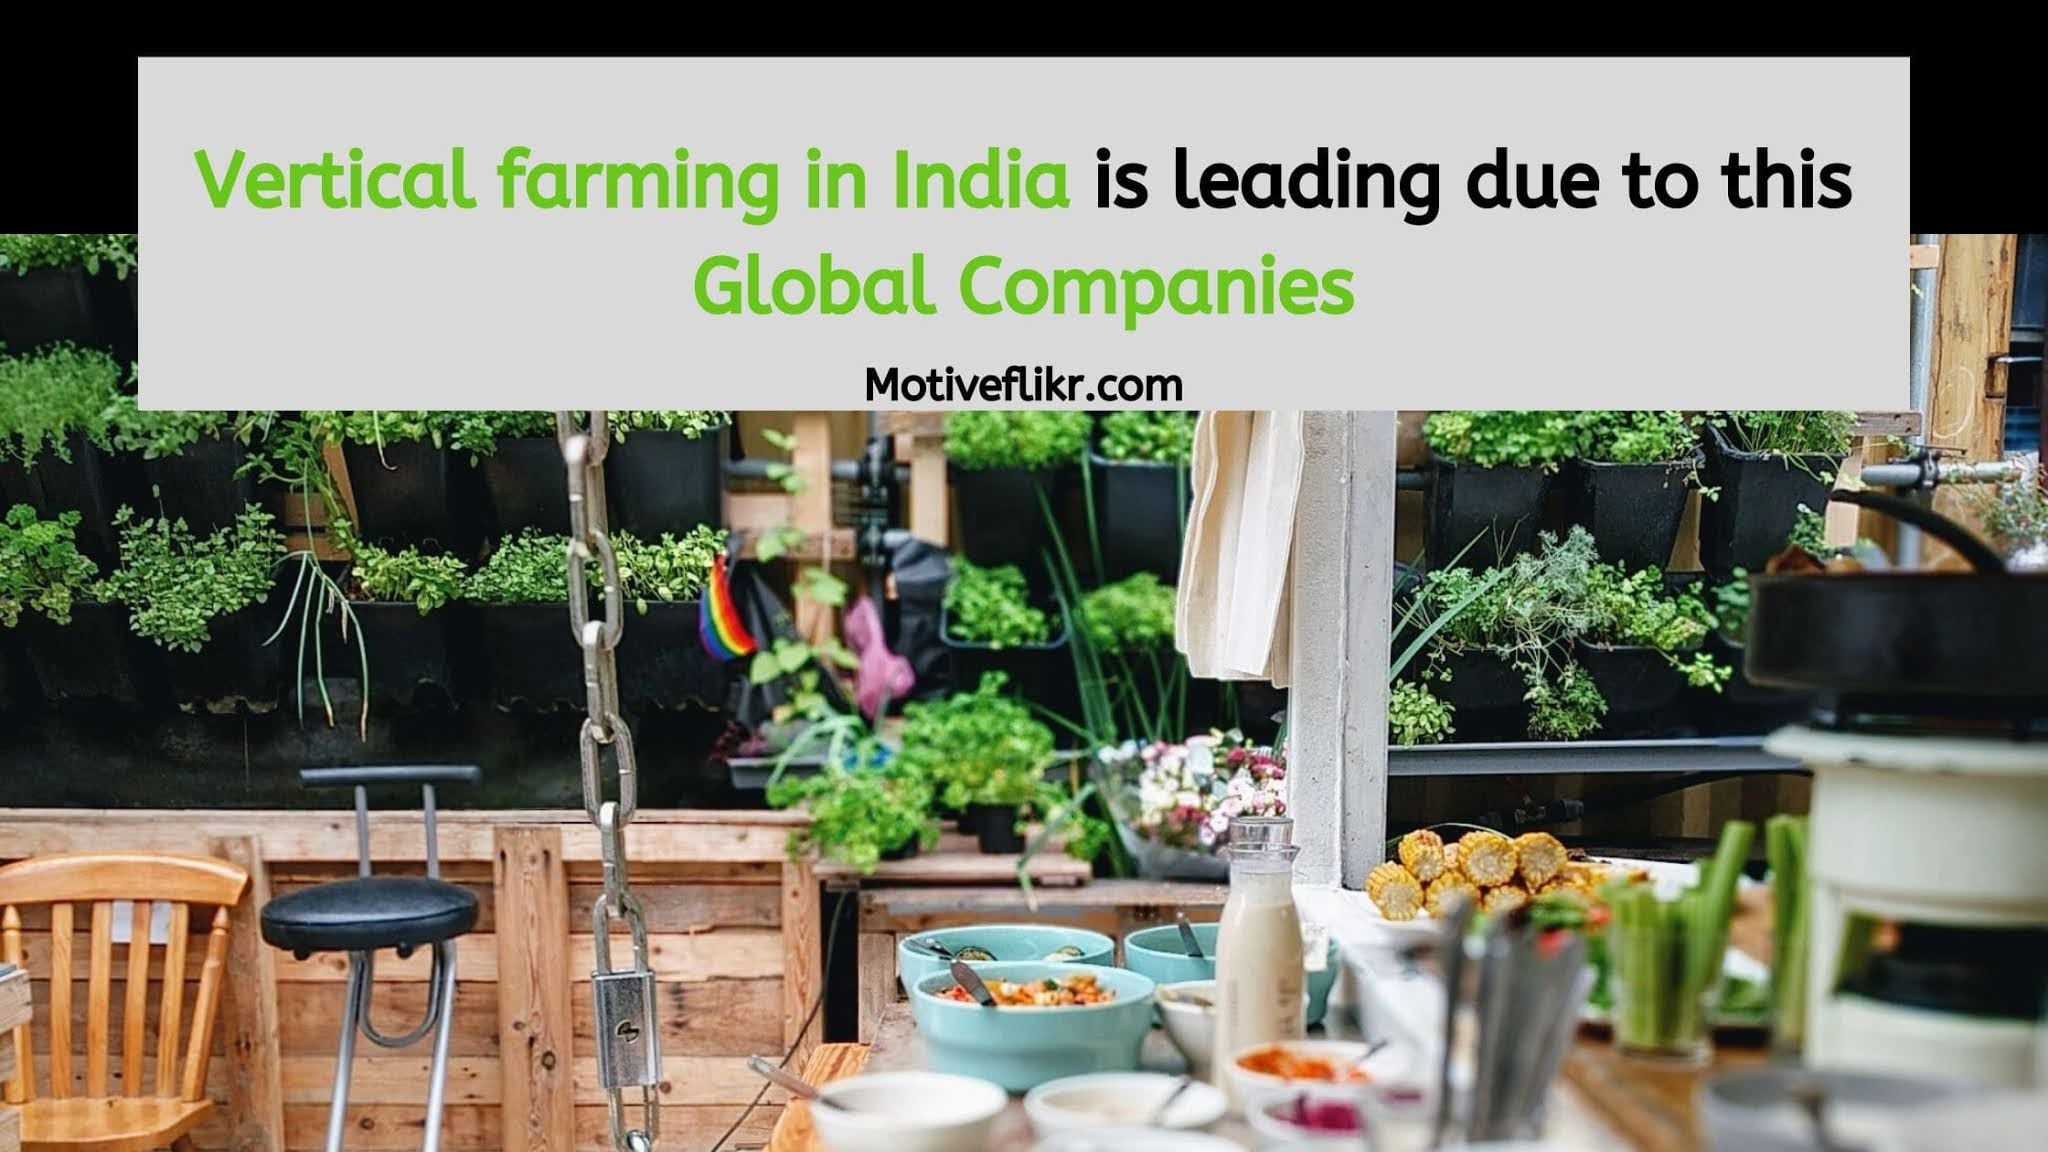 Vertical farming in India is leading due to this Global Companies